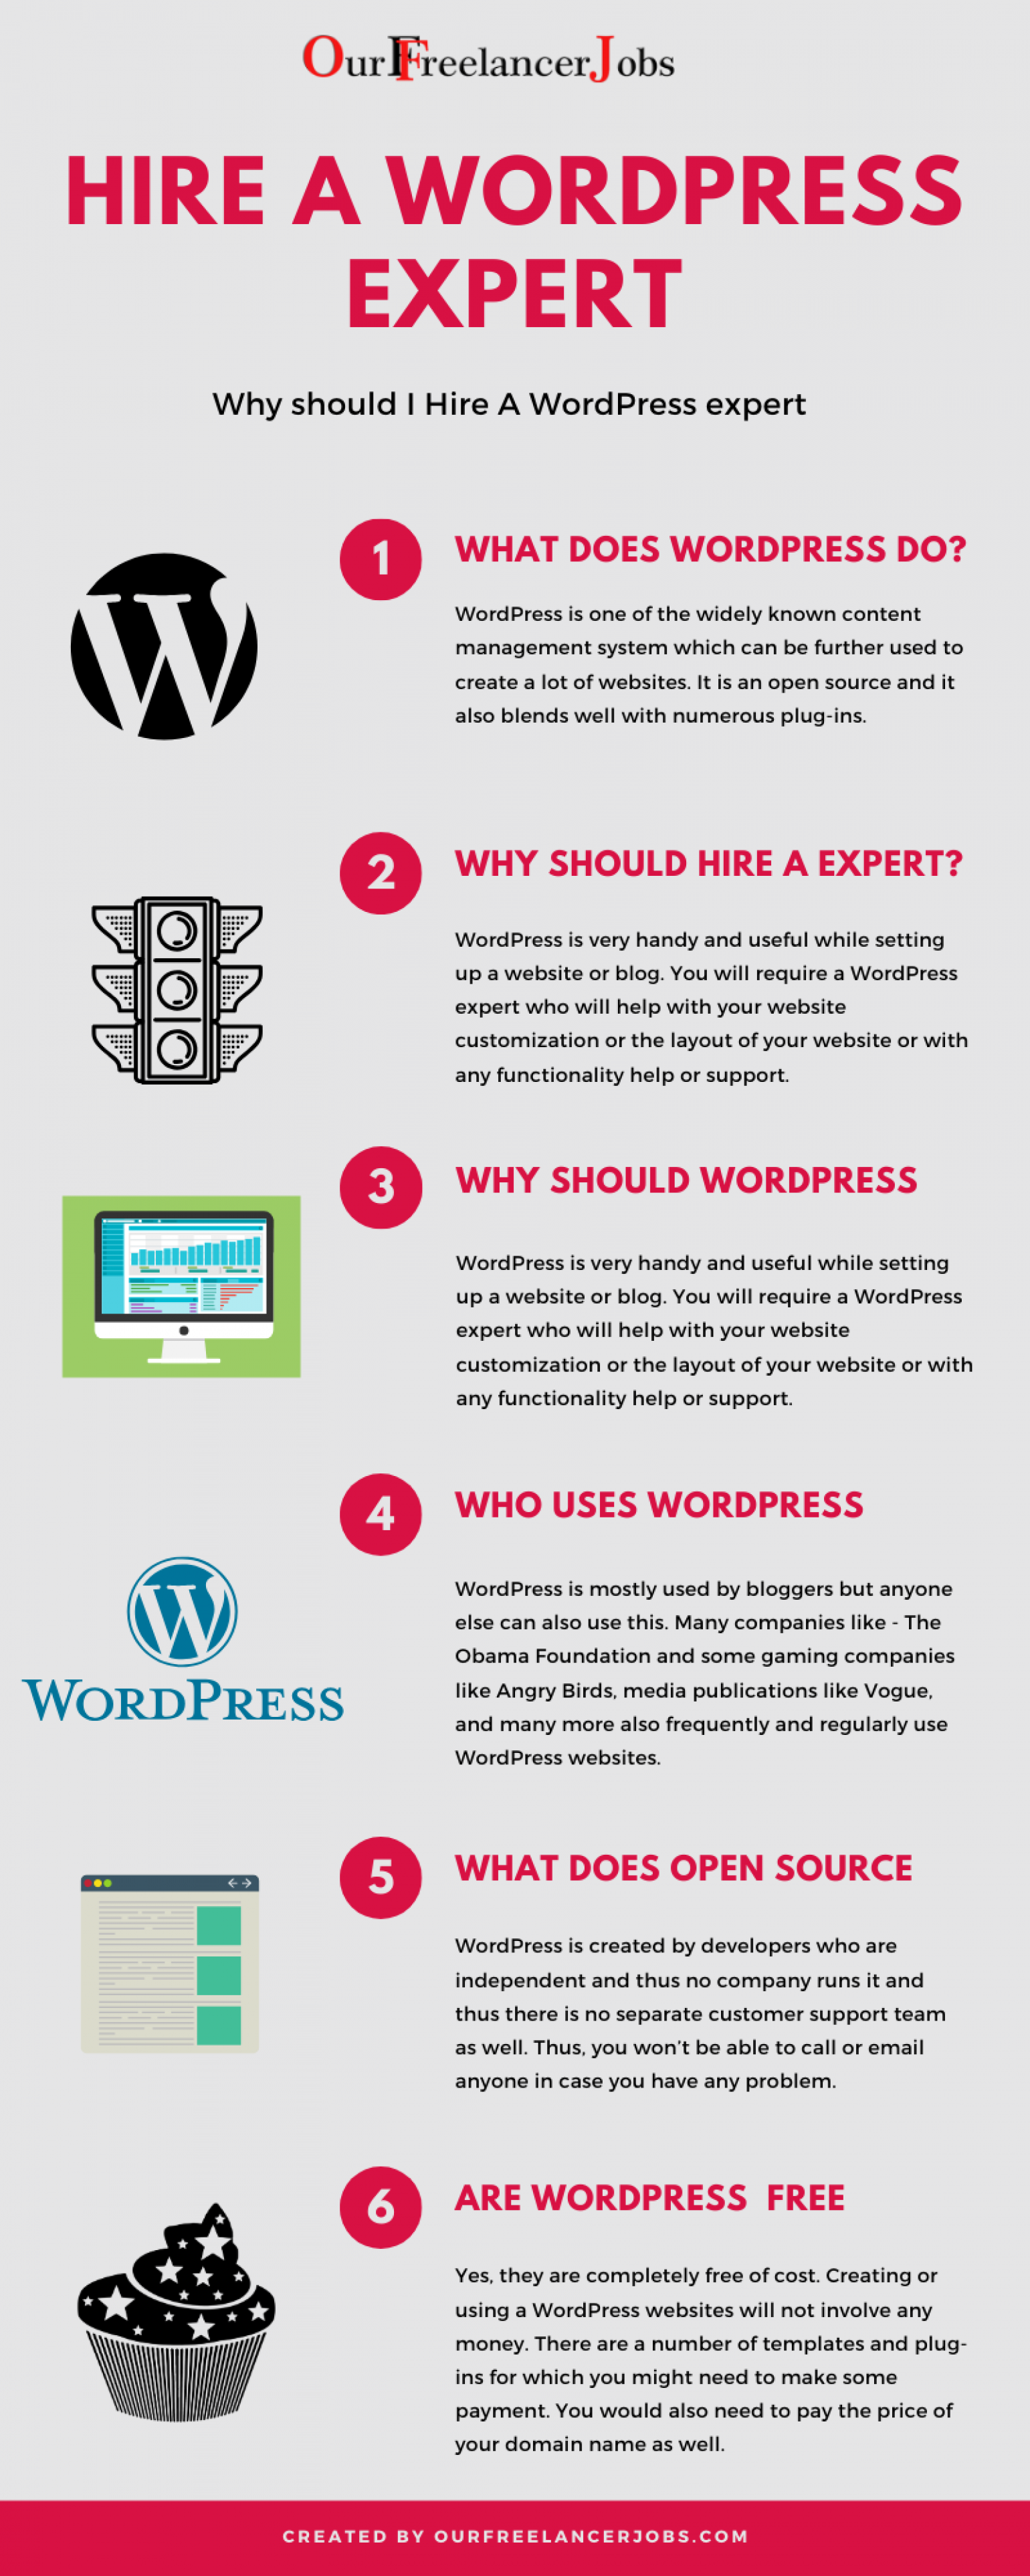 What does WordPress do? Why should I hire a WordPress expert?